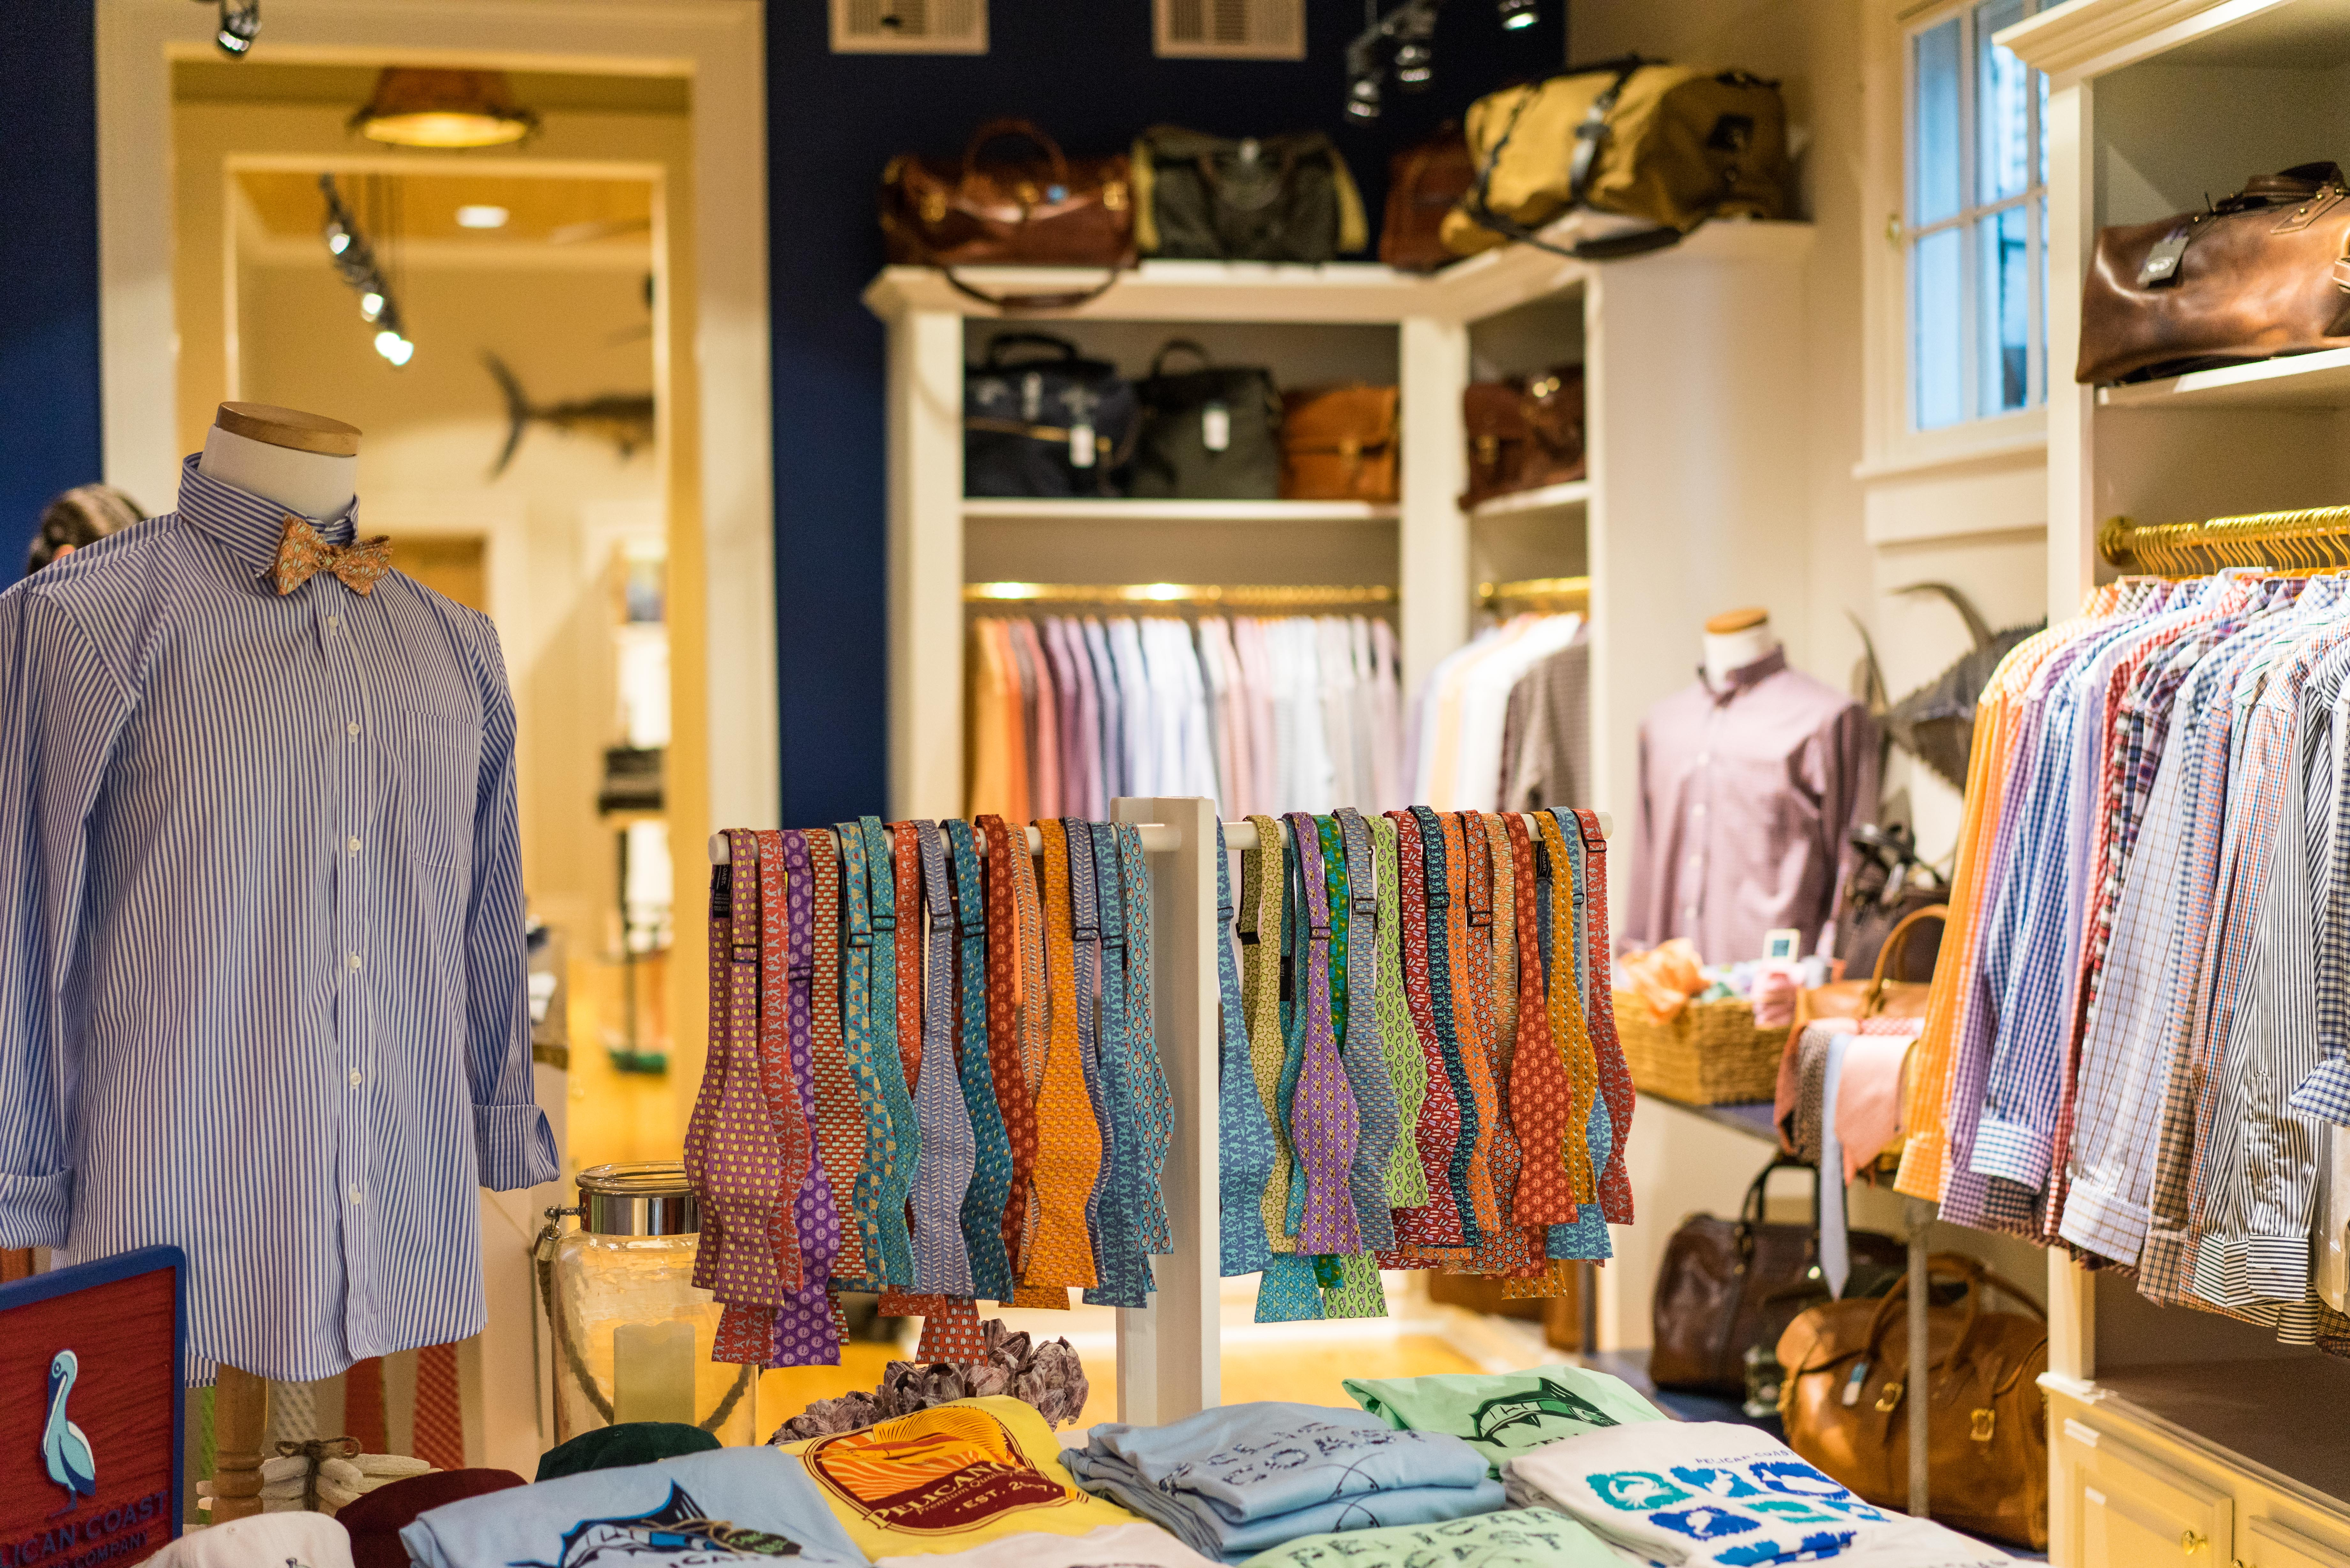 b852e3f84 Pelican Coast Clothing features hand-made in New Orleans button down sport  shirts and belts